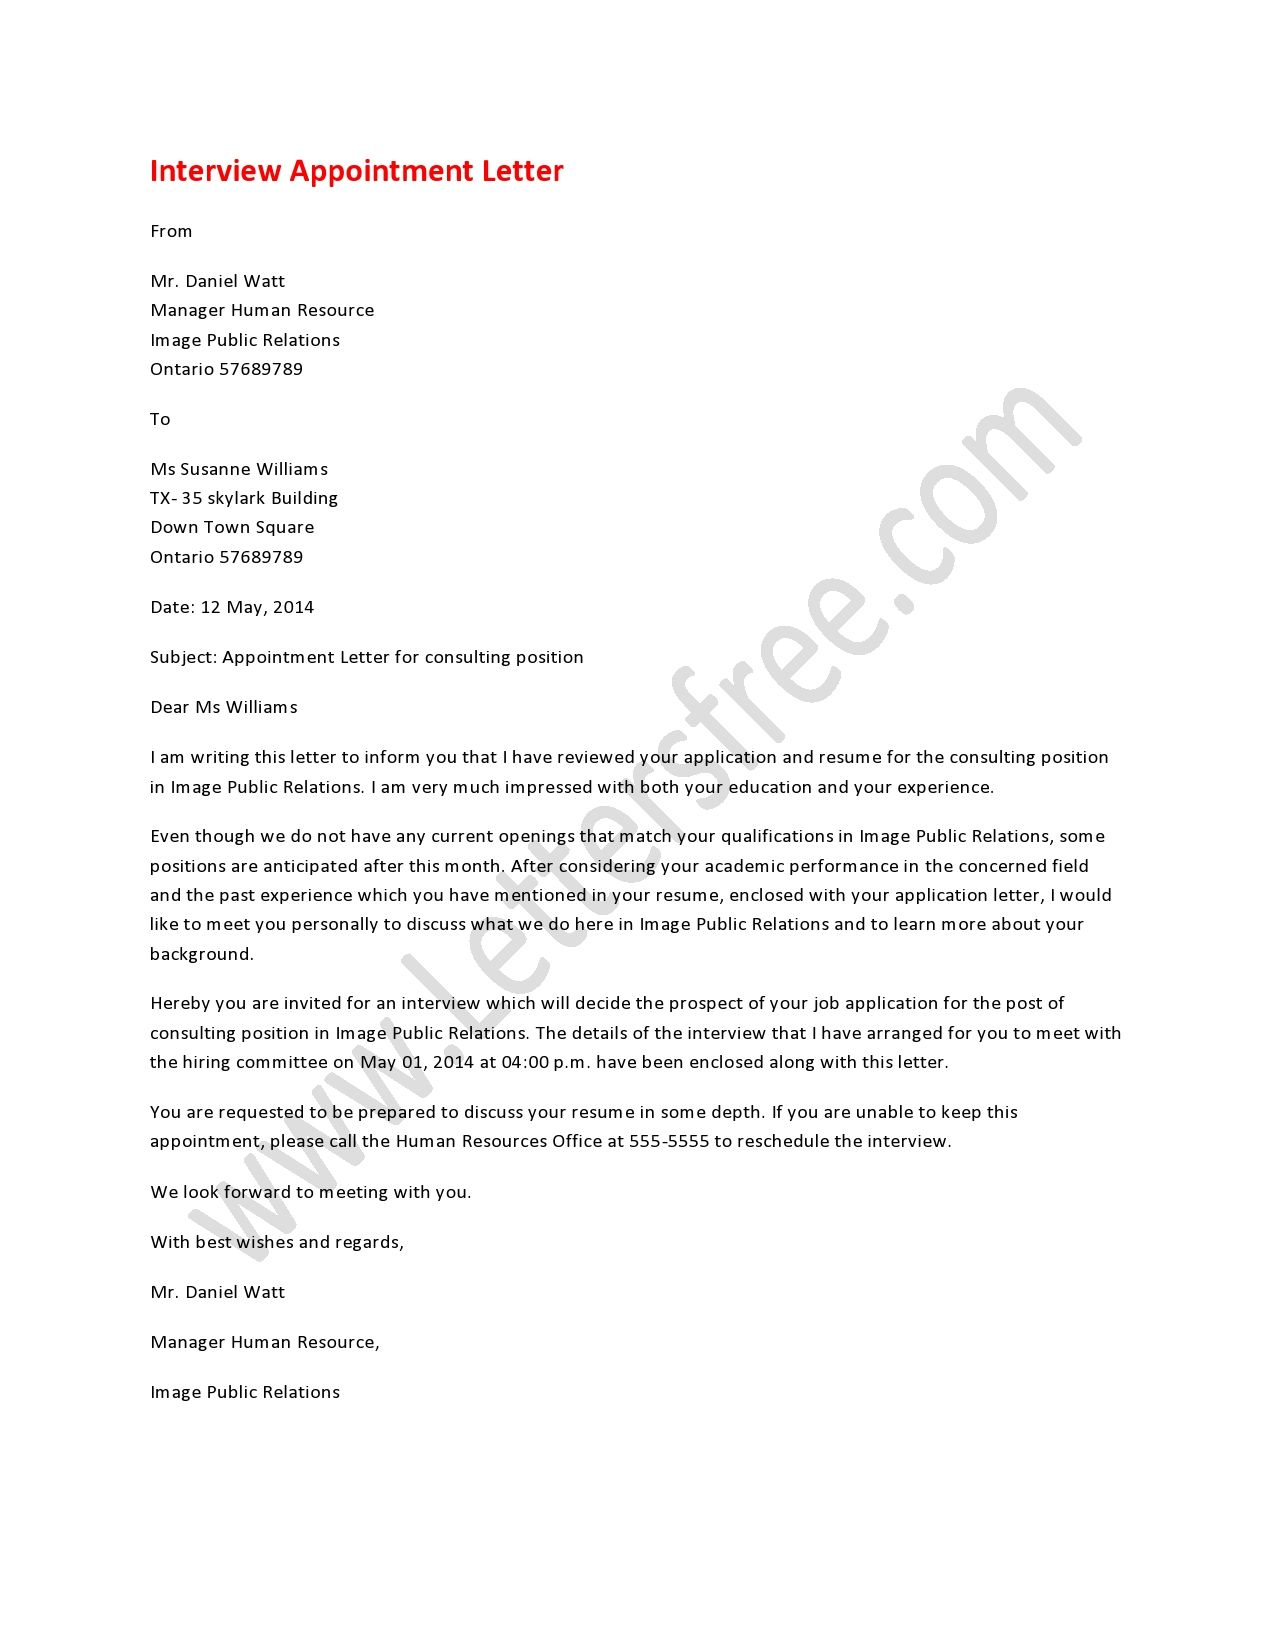 Interview appointment letter writing help students and math an interview appointment letter is usually addressed to the aspirant employee by the employer with the intention of an interview altavistaventures Gallery